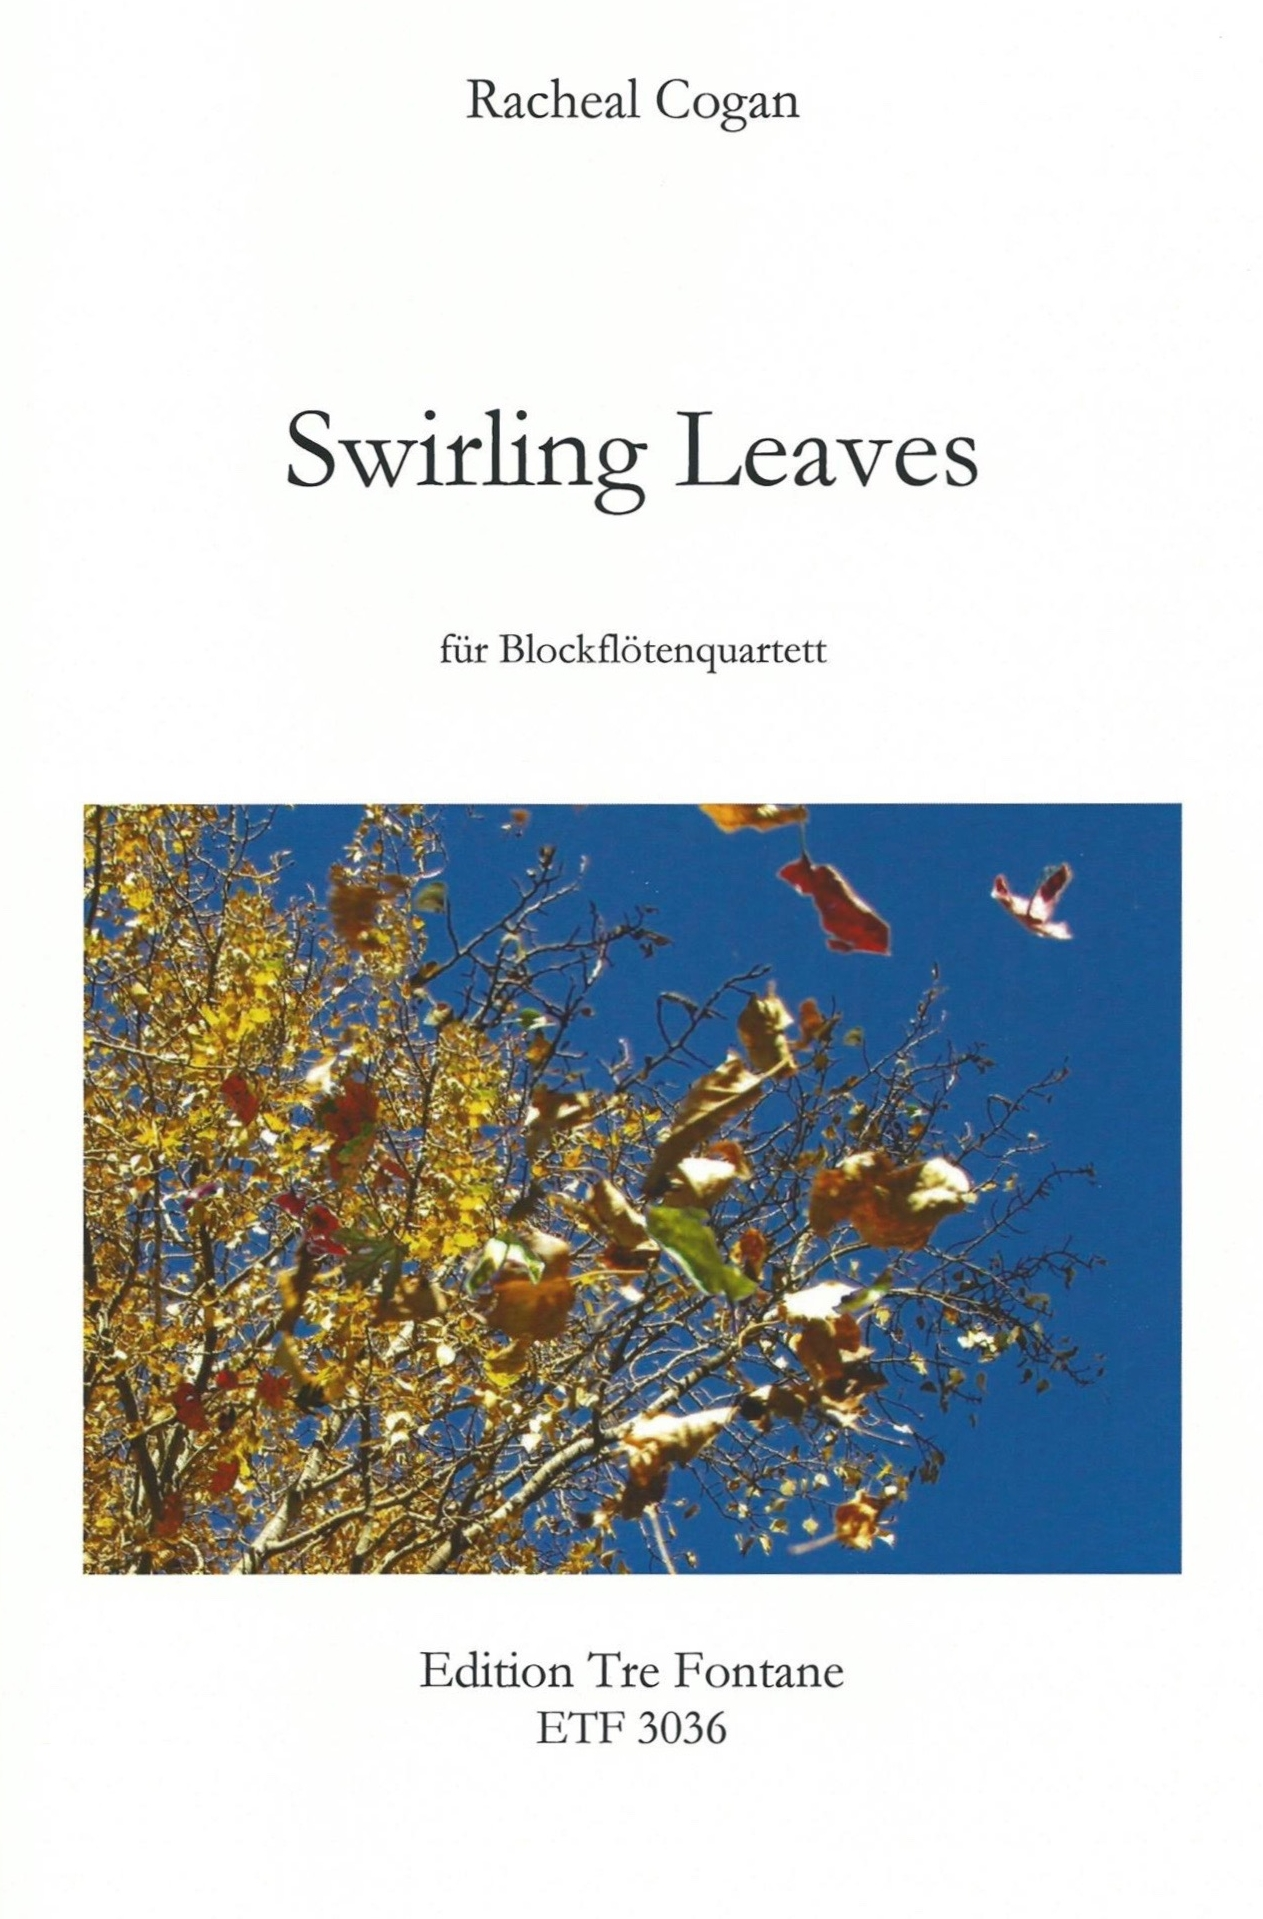 SWIRLING LEAVES Quartet for 2 Tenor recorders, bass recorder, and Contrabass recorder (2016). Score available from Edition Tre Fontane (ETF 3036).